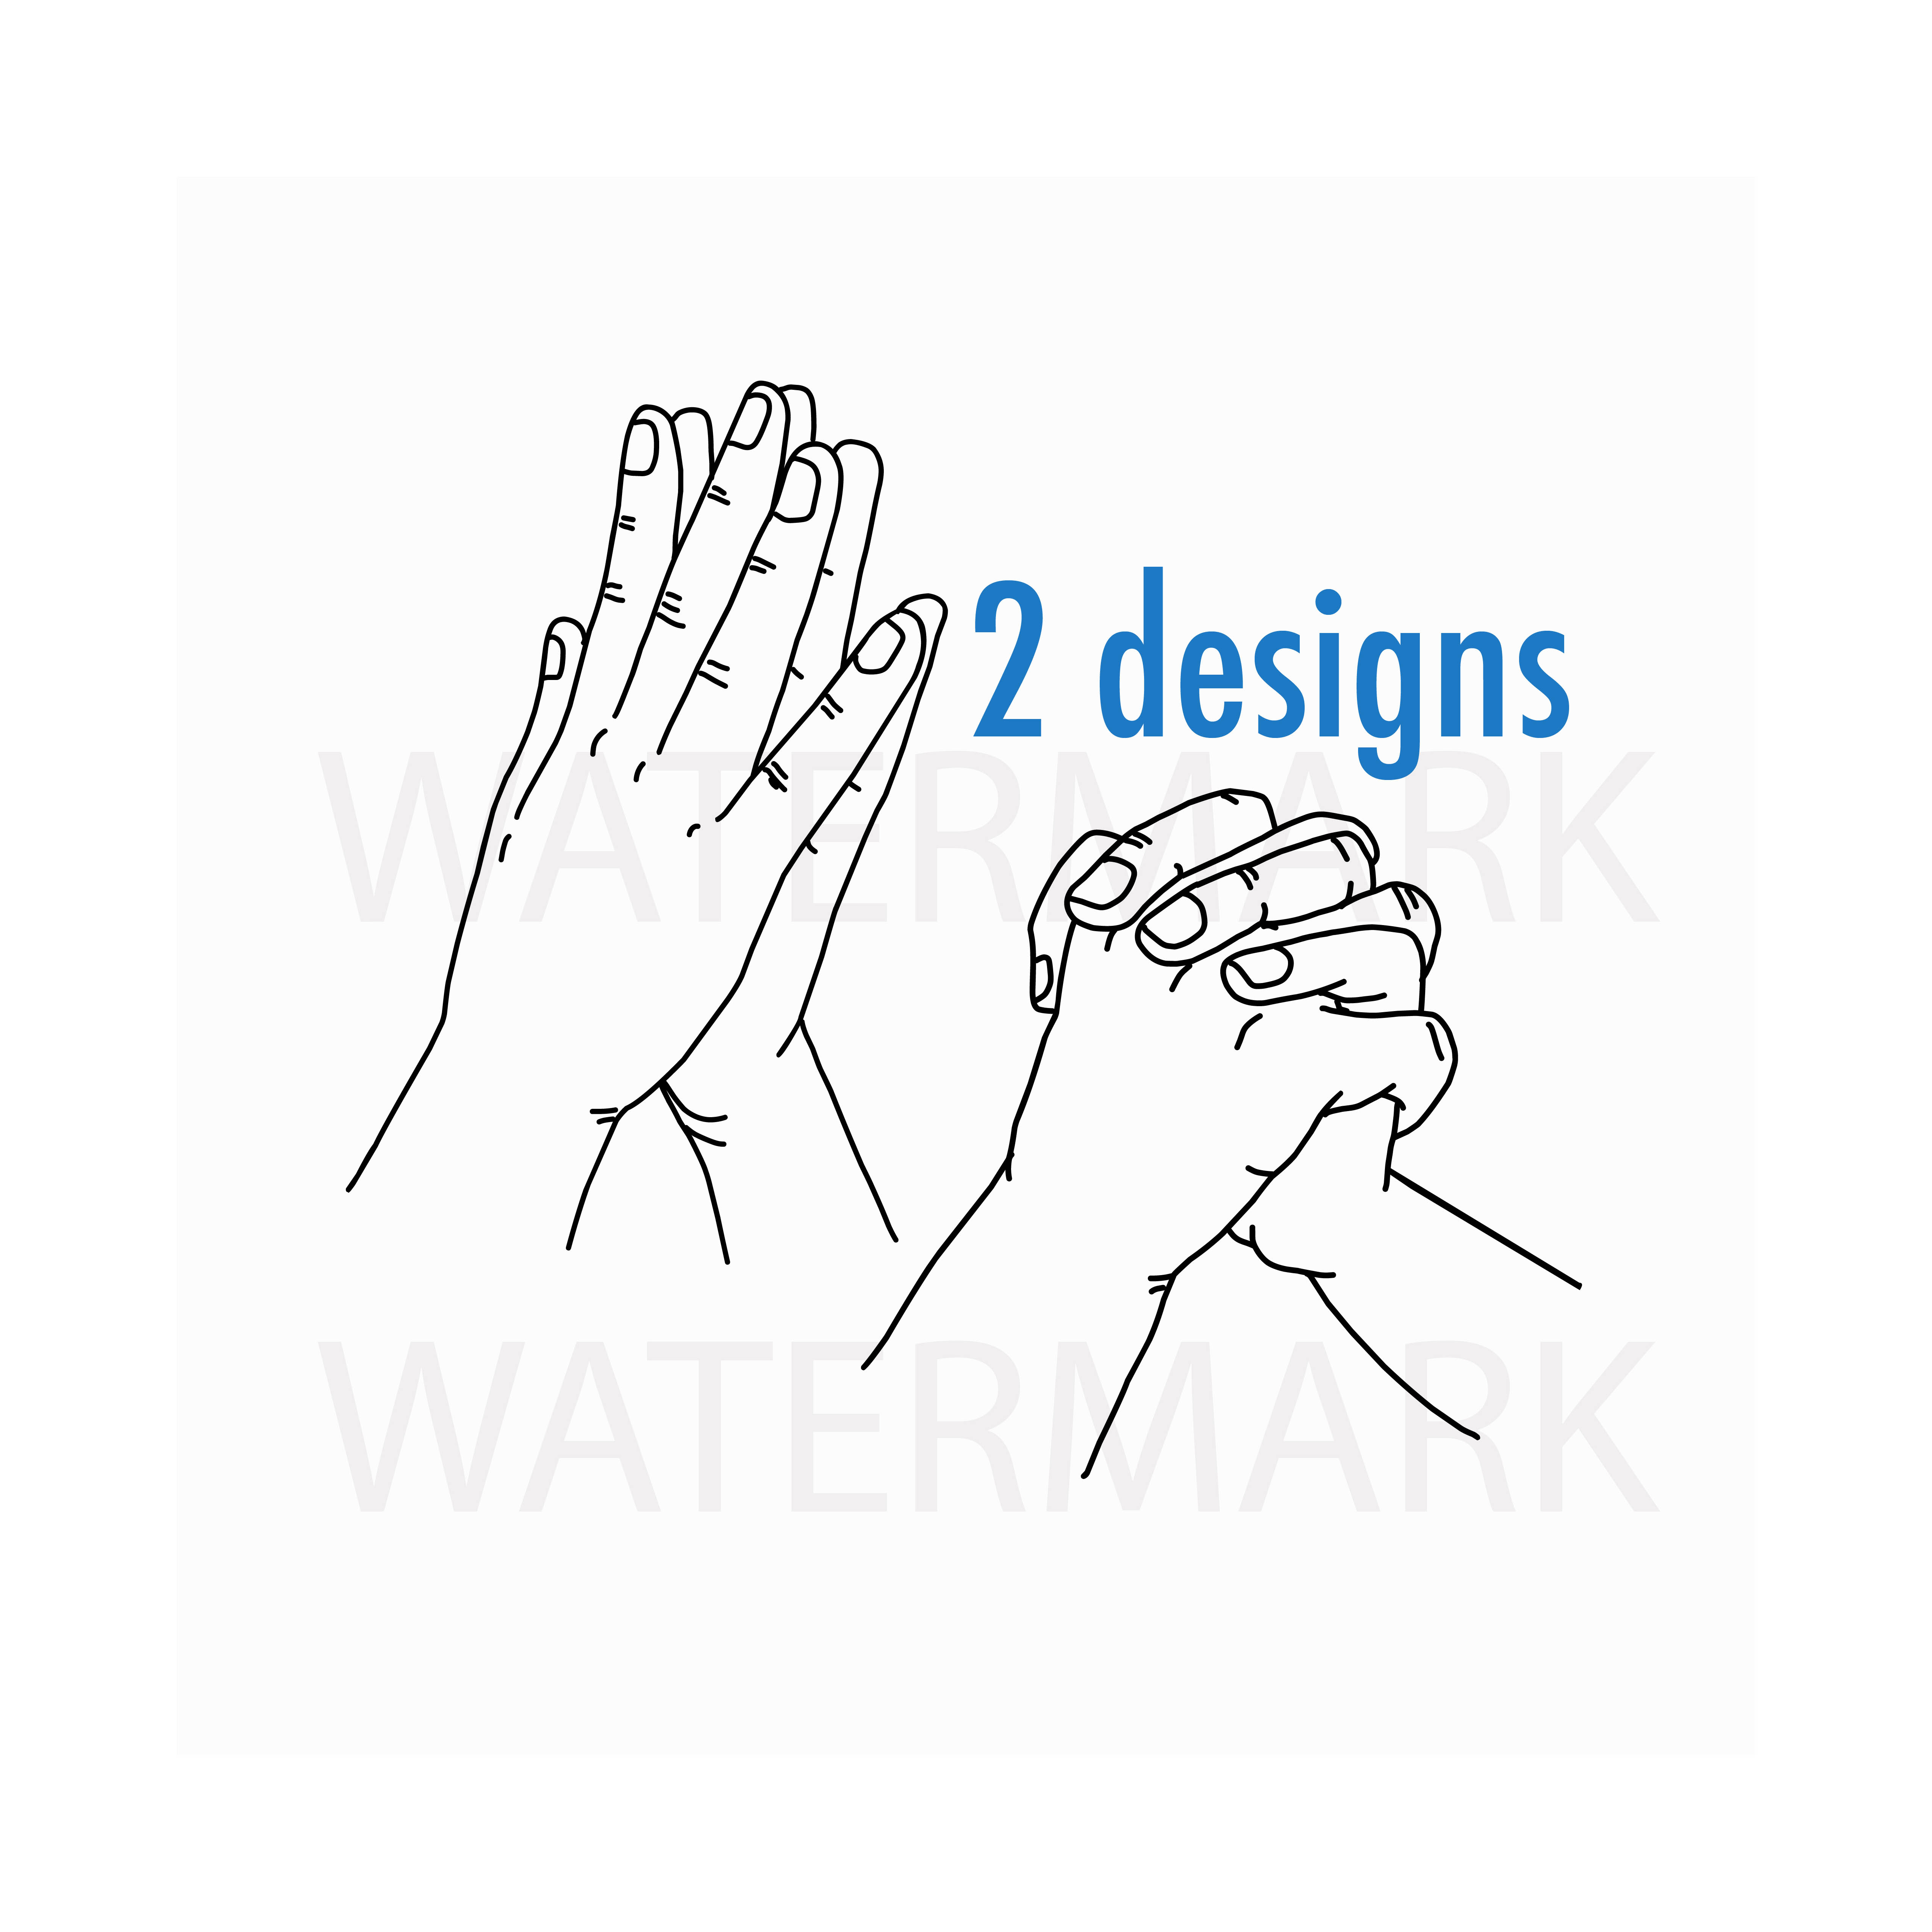 Holding Hand with love and desire - SVG/JPG/PNG Hand Drawing example image 1